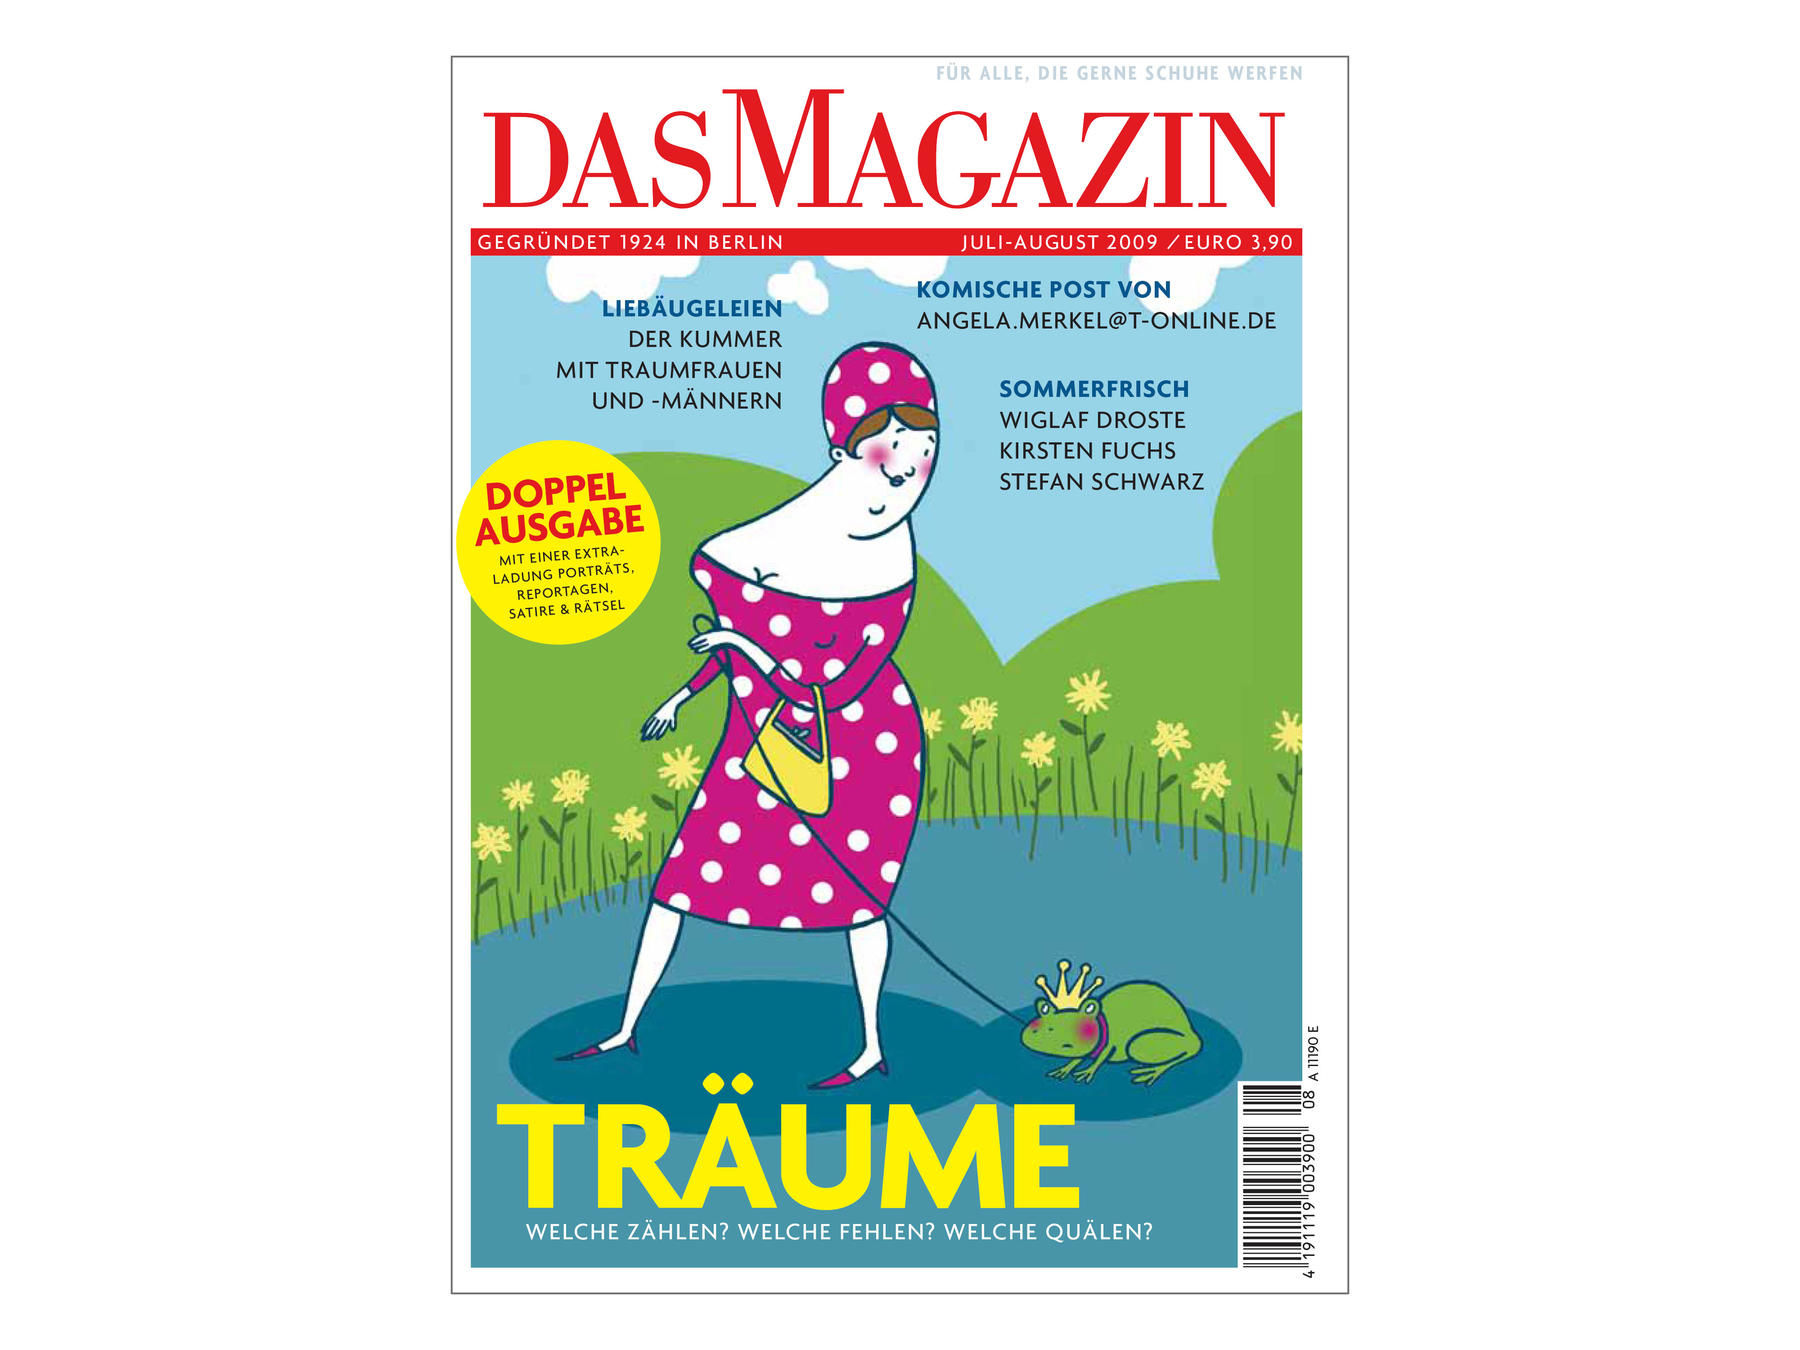 Das Magazin, Coverillustration Isabel Große Holtforth